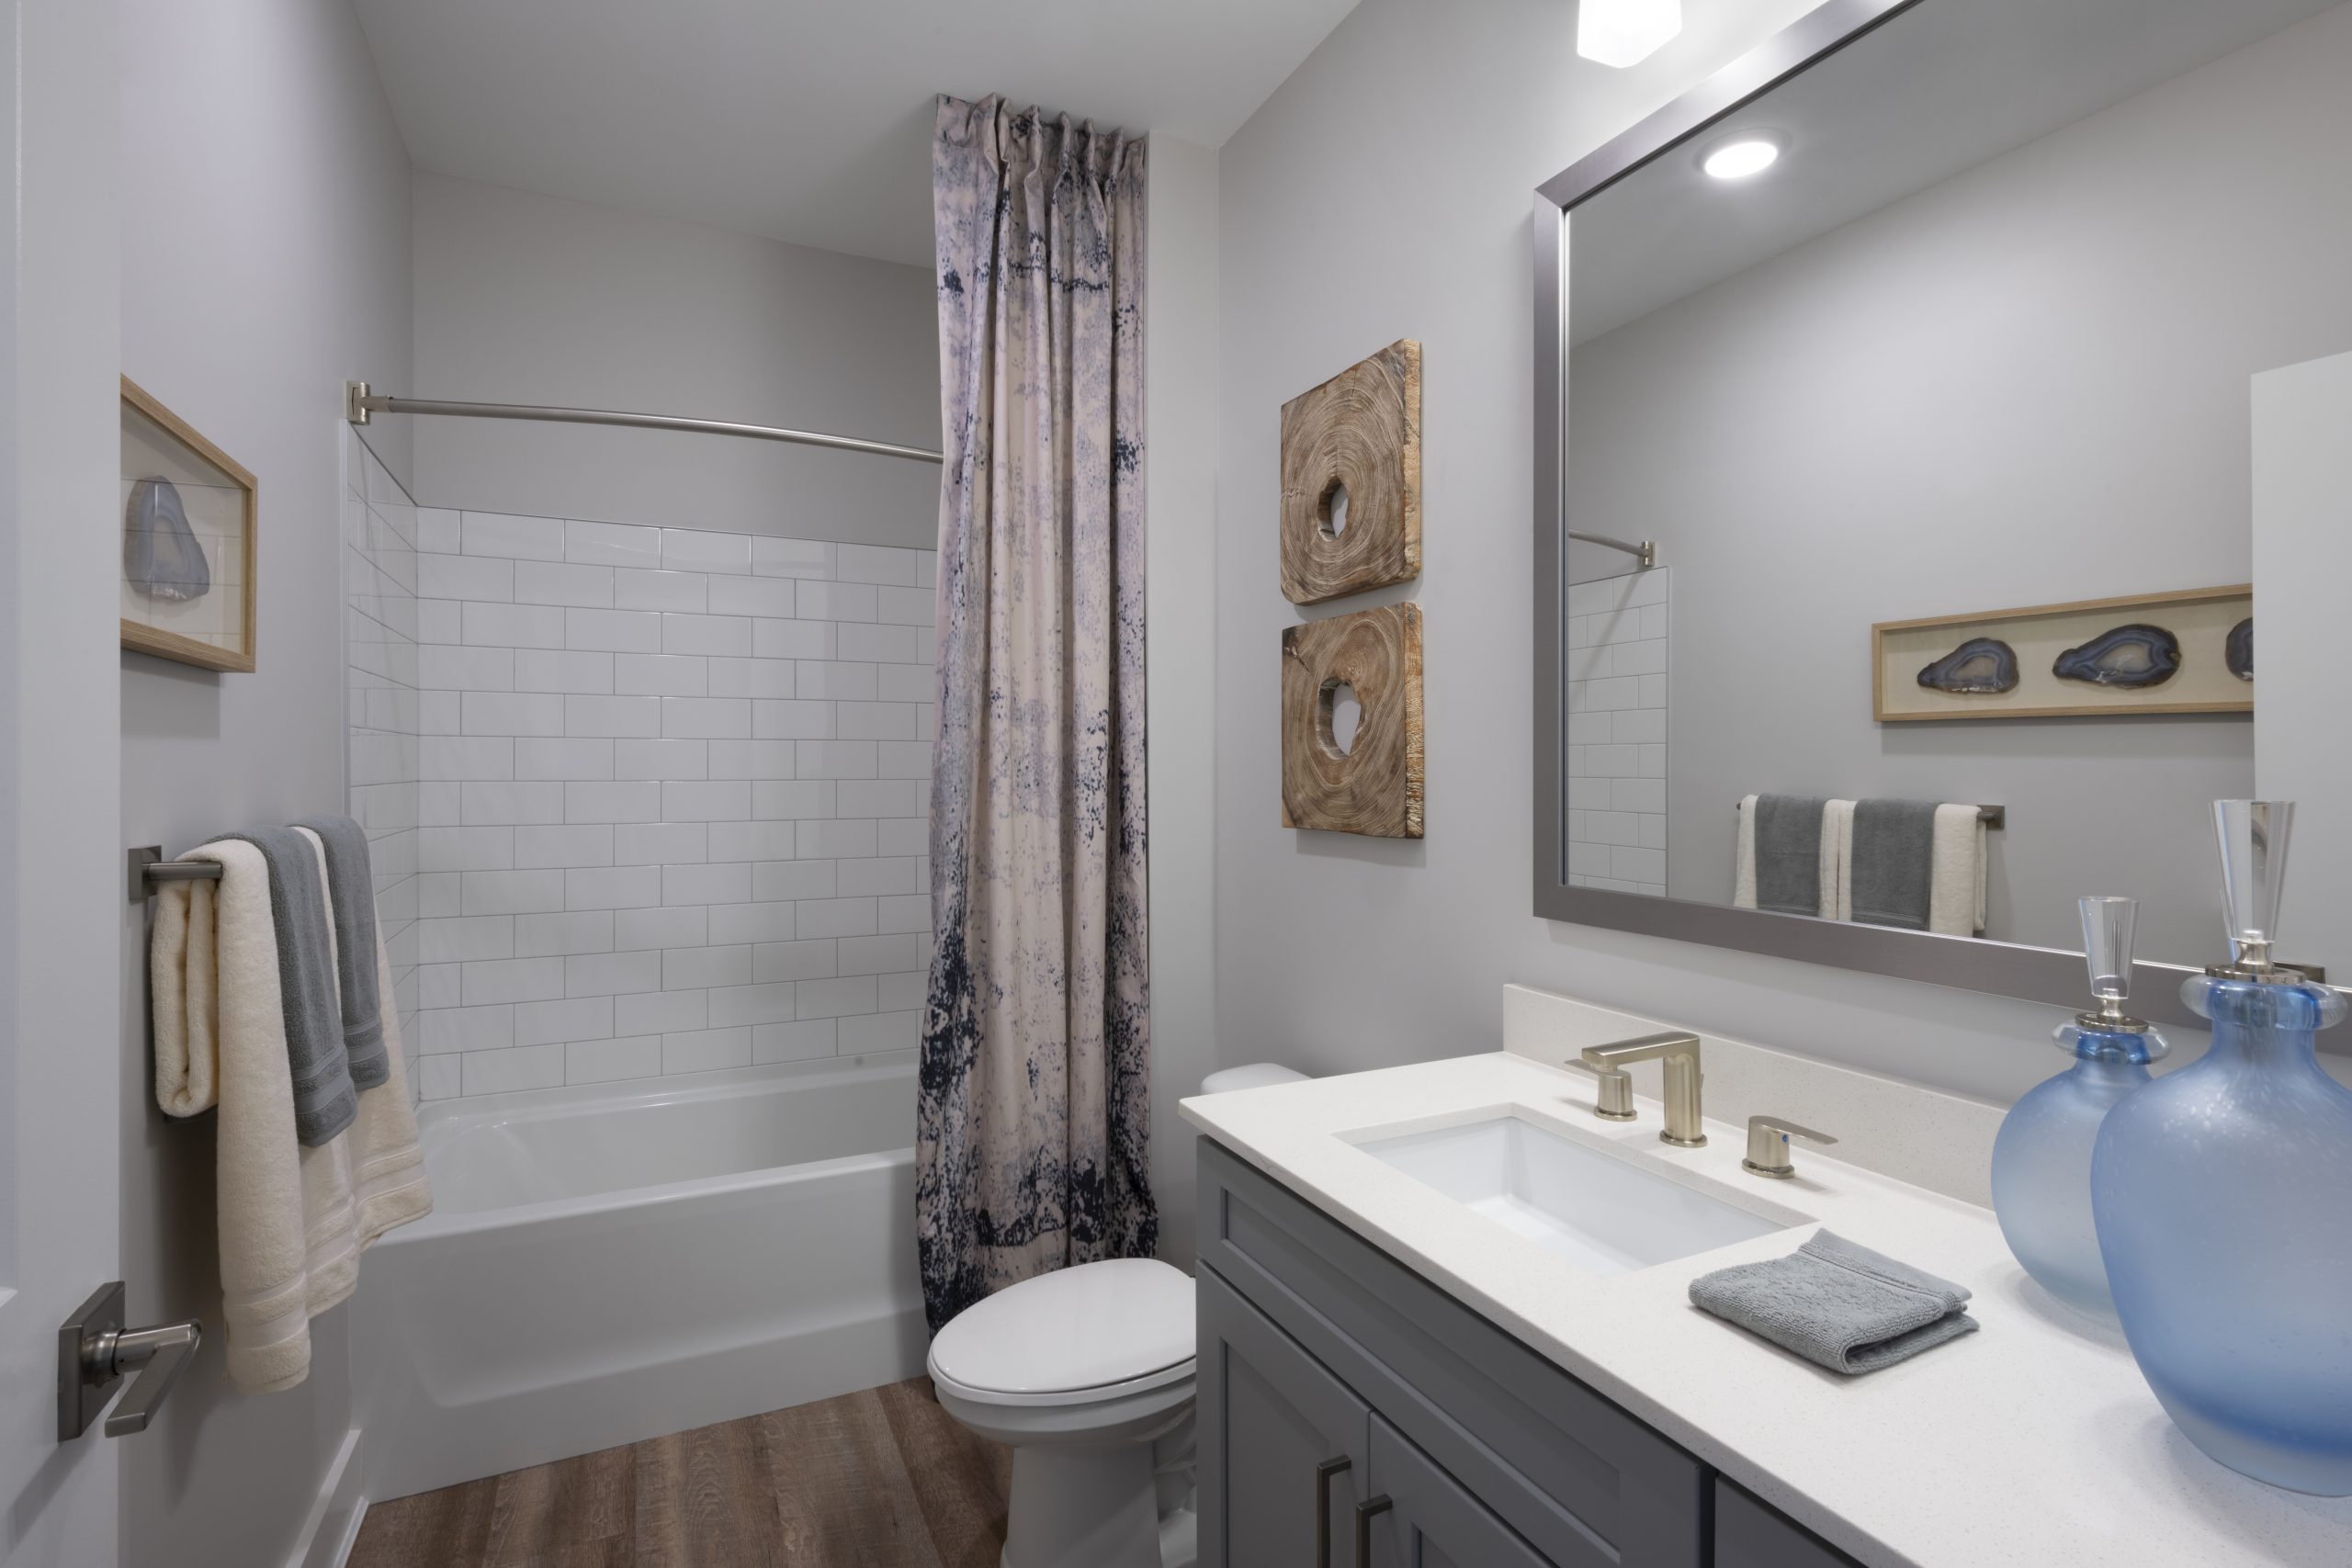 Curved shower bars and tons of floor space